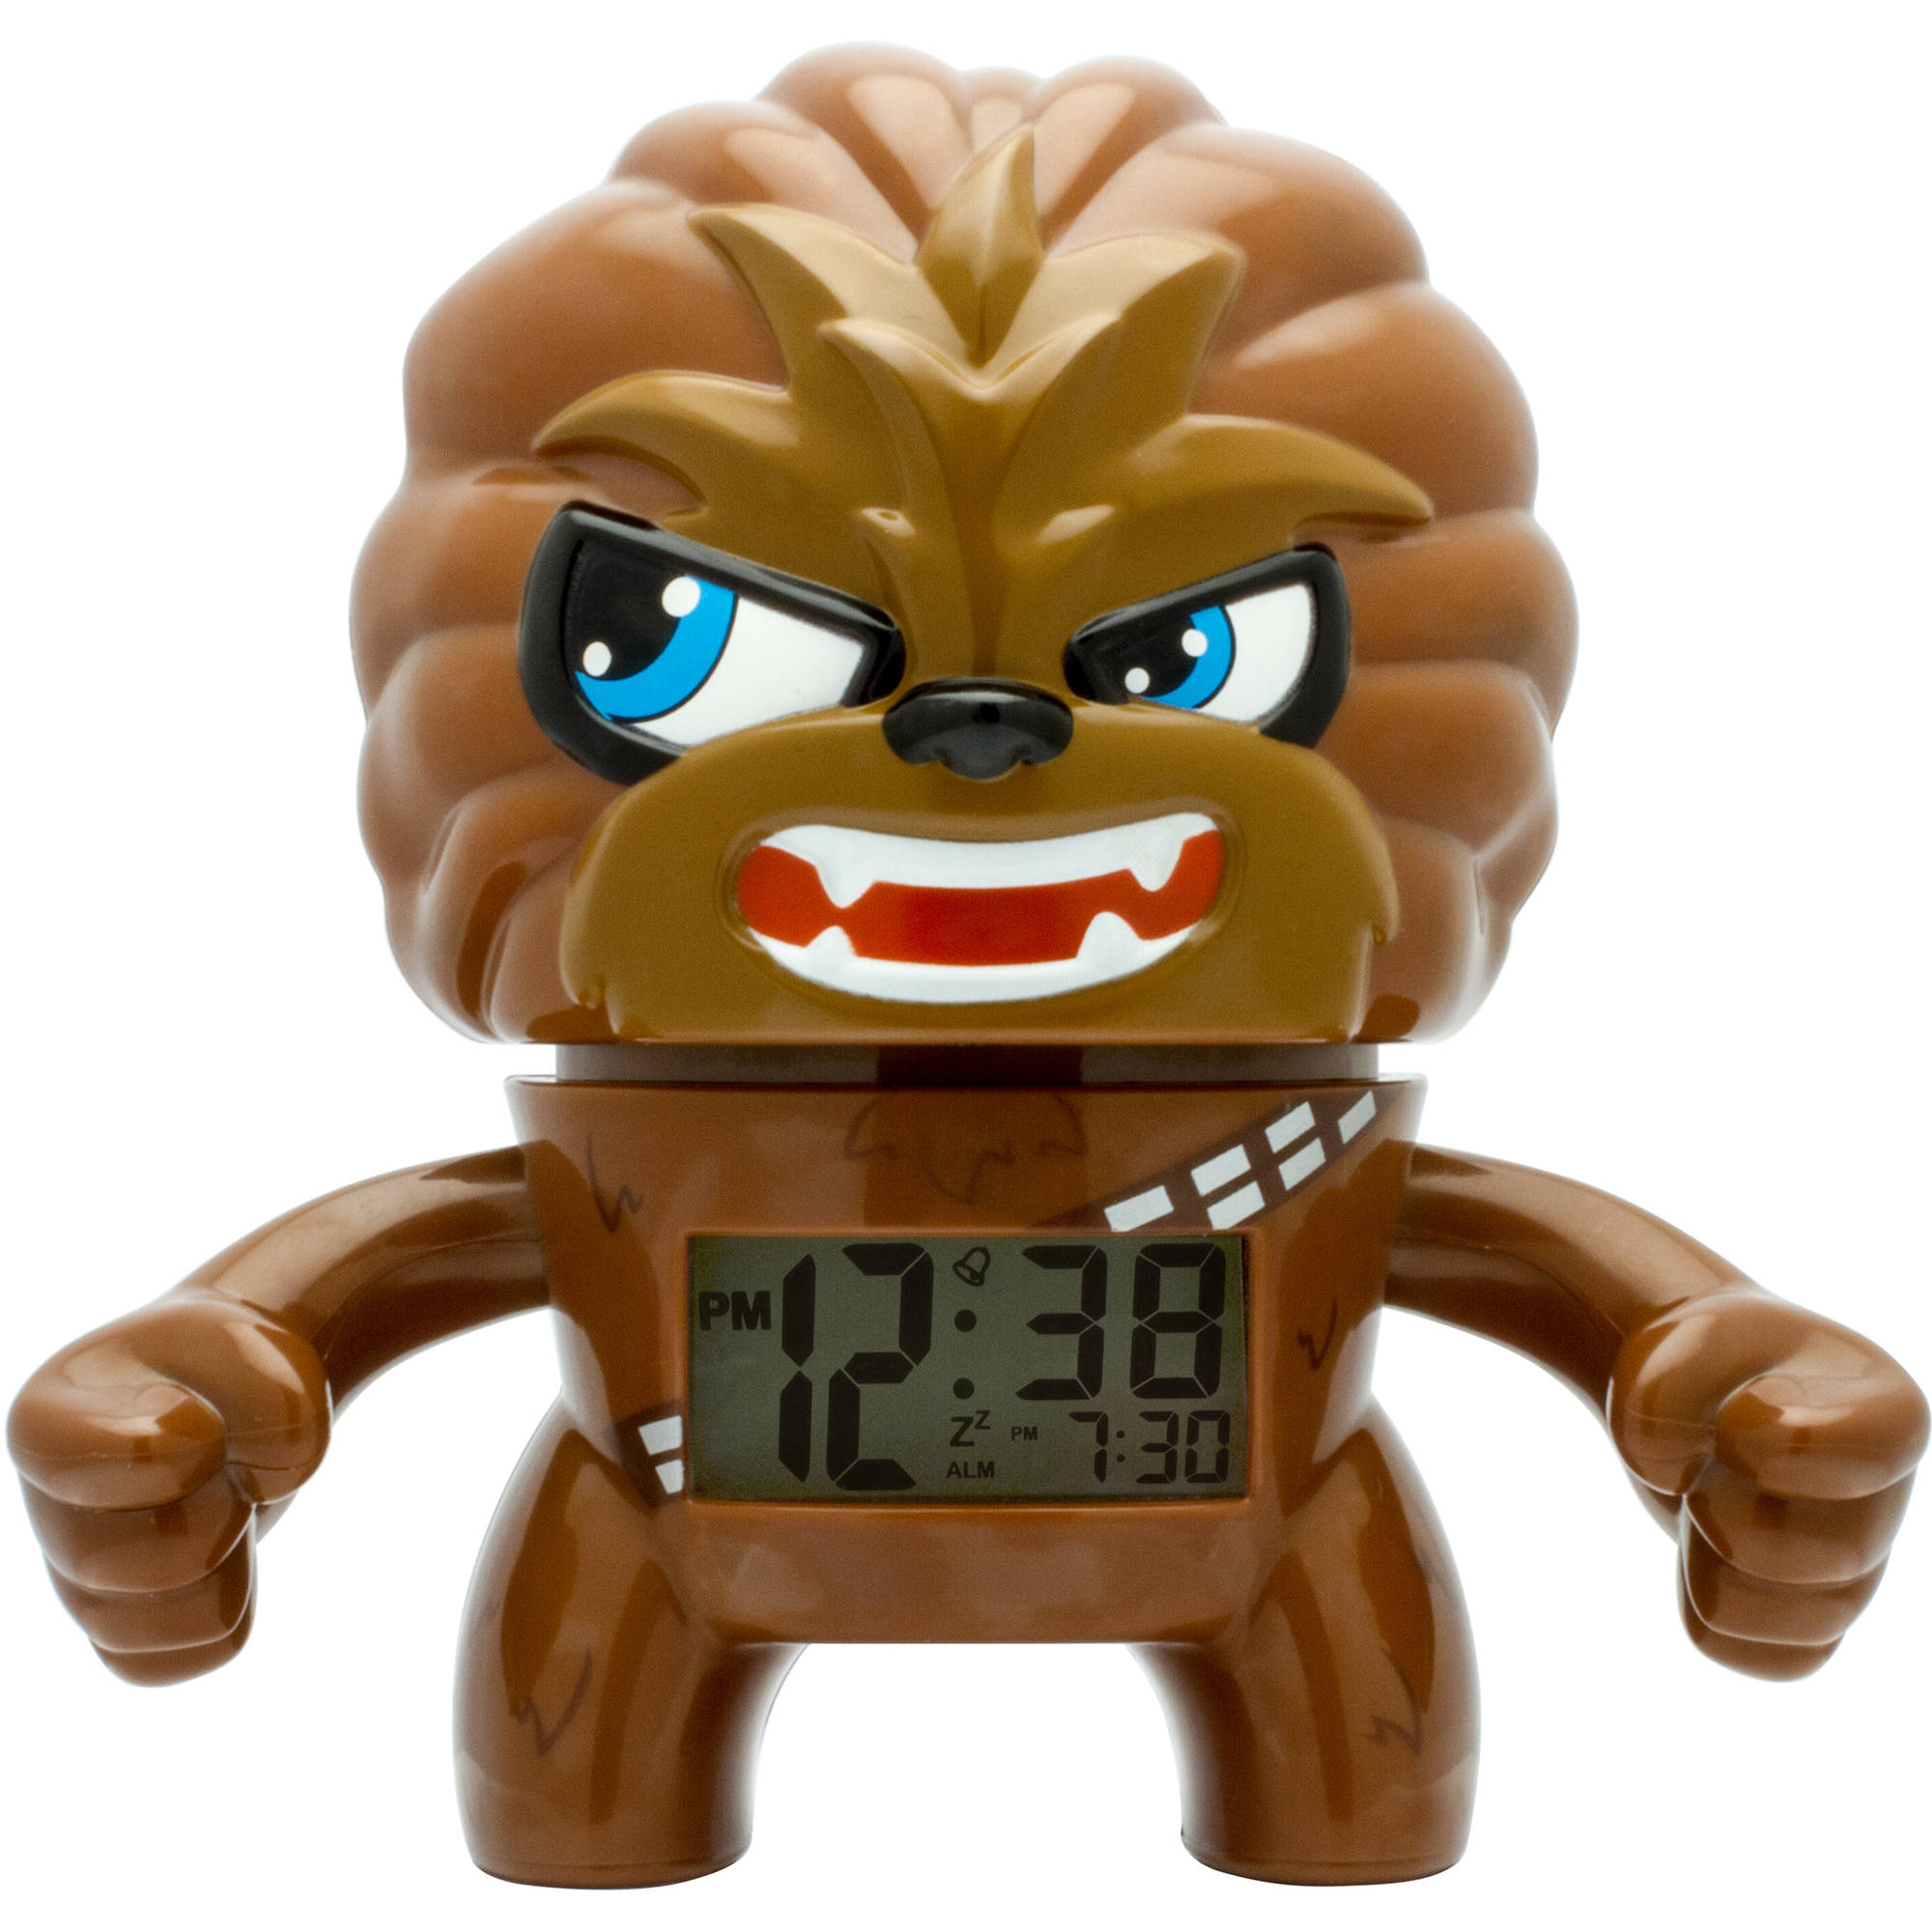 BulbBotz™ Star Wars™ Chewbacca™ Light-Up Alarm Clock (7.5 inch)